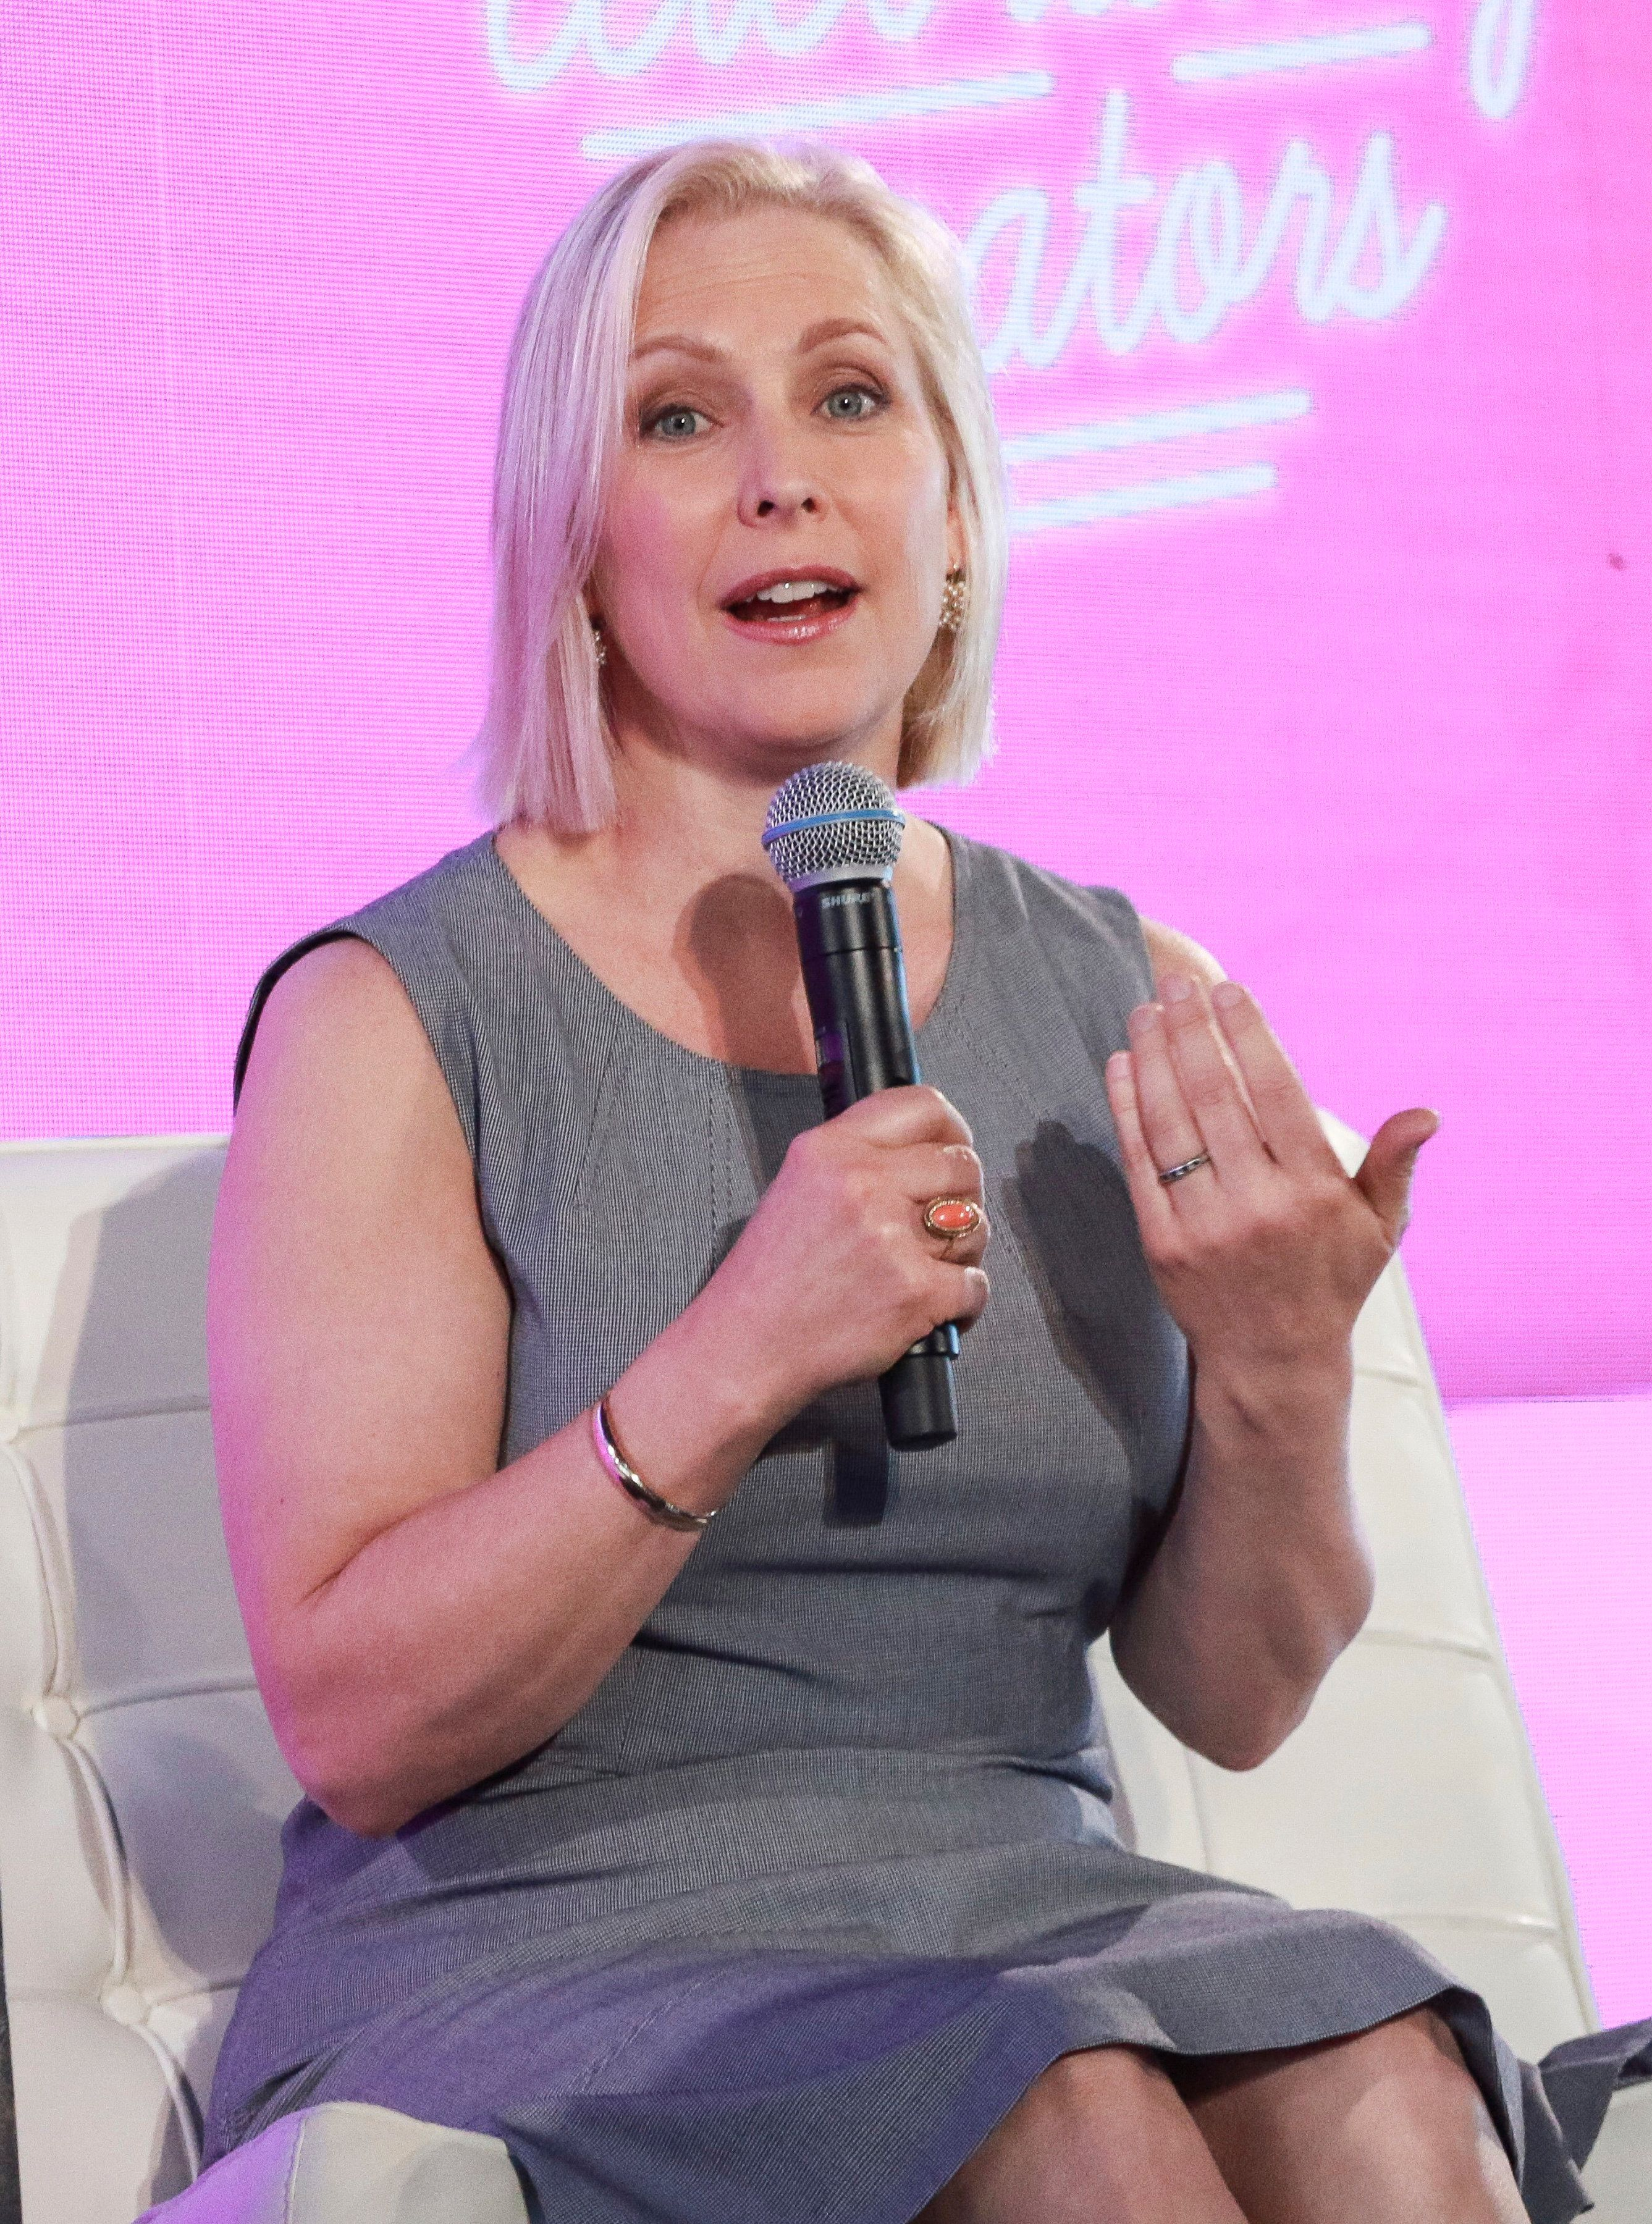 NEW YORK, NY - AUGUST 9: Senator Kirsten Gillibrand at the #WinningWomen discussion at #BlogHer18 Creators Summit in New York City on August 9, 2018. Credit: Diego Corredor/MediaPunch /IPX